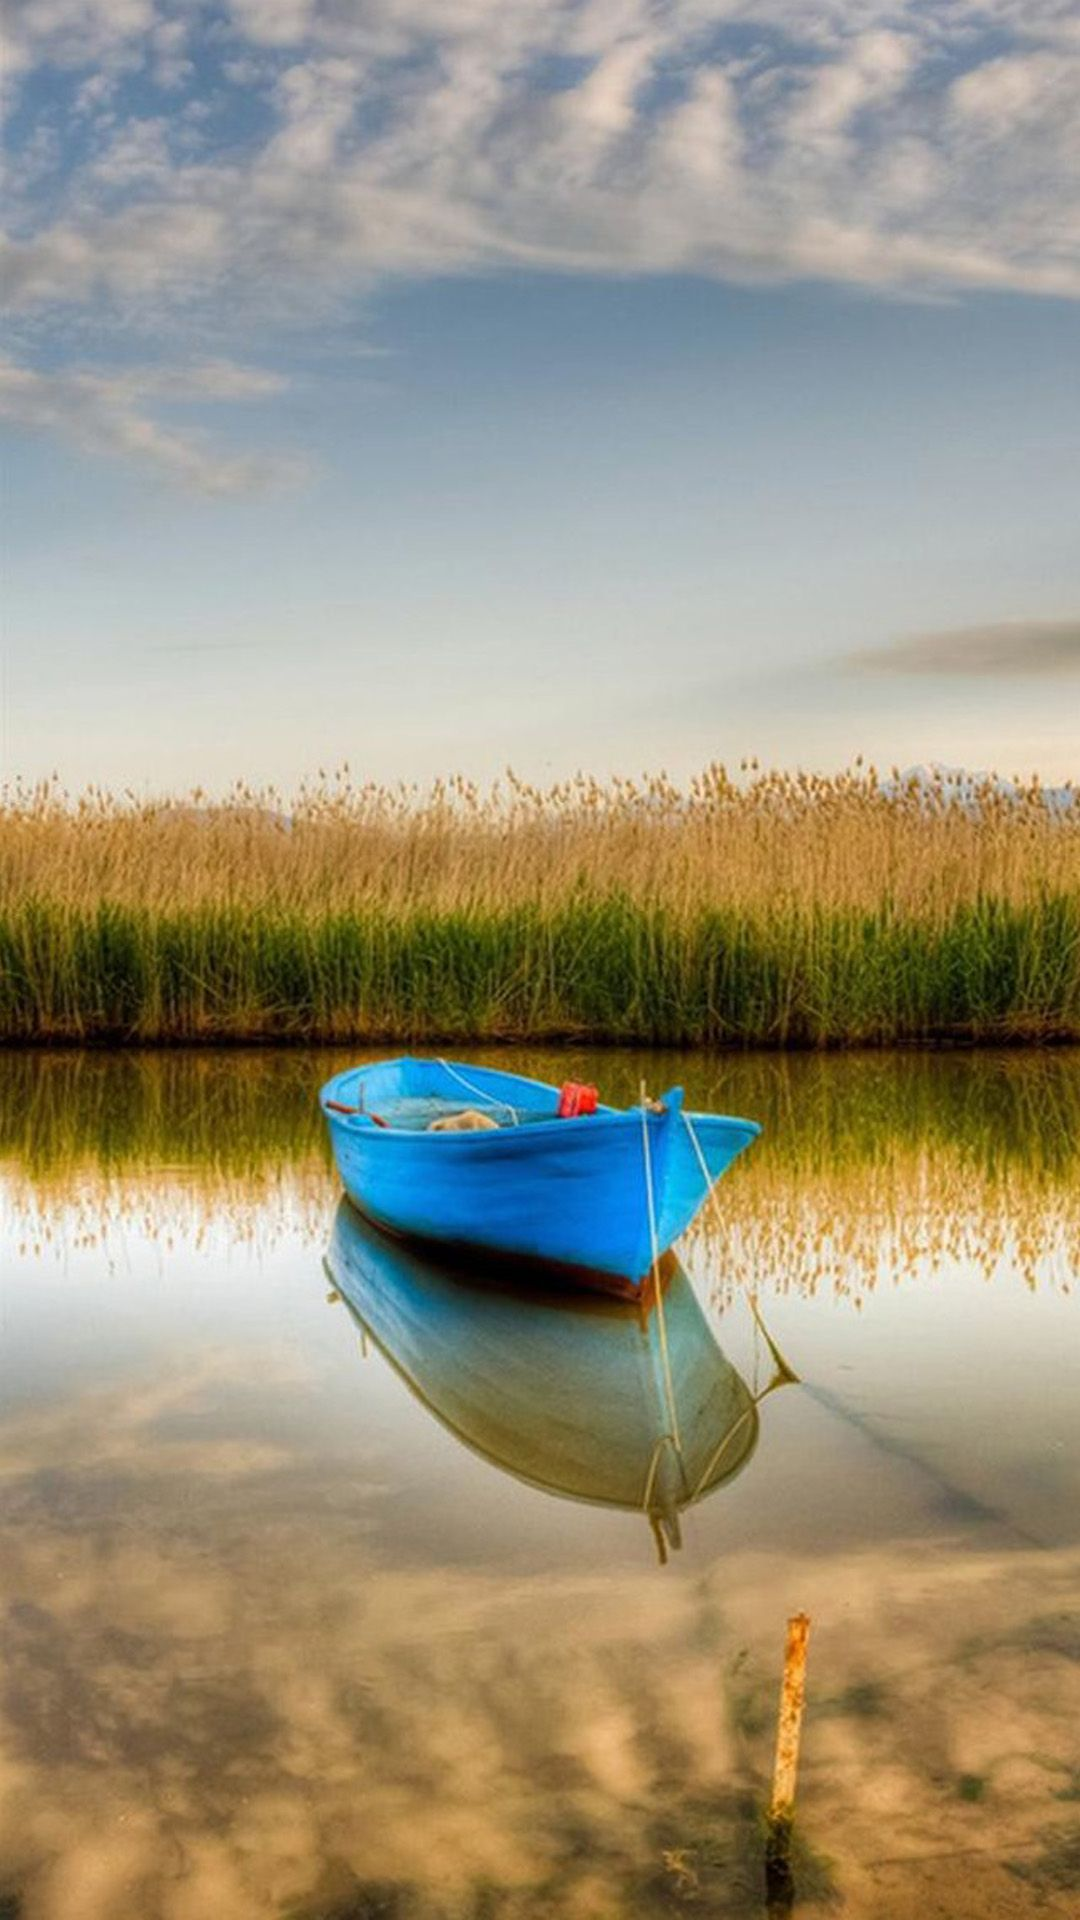 65 NATURAL IPHONE WALLPAPERS FOR THE NATURE LOVERS Boating